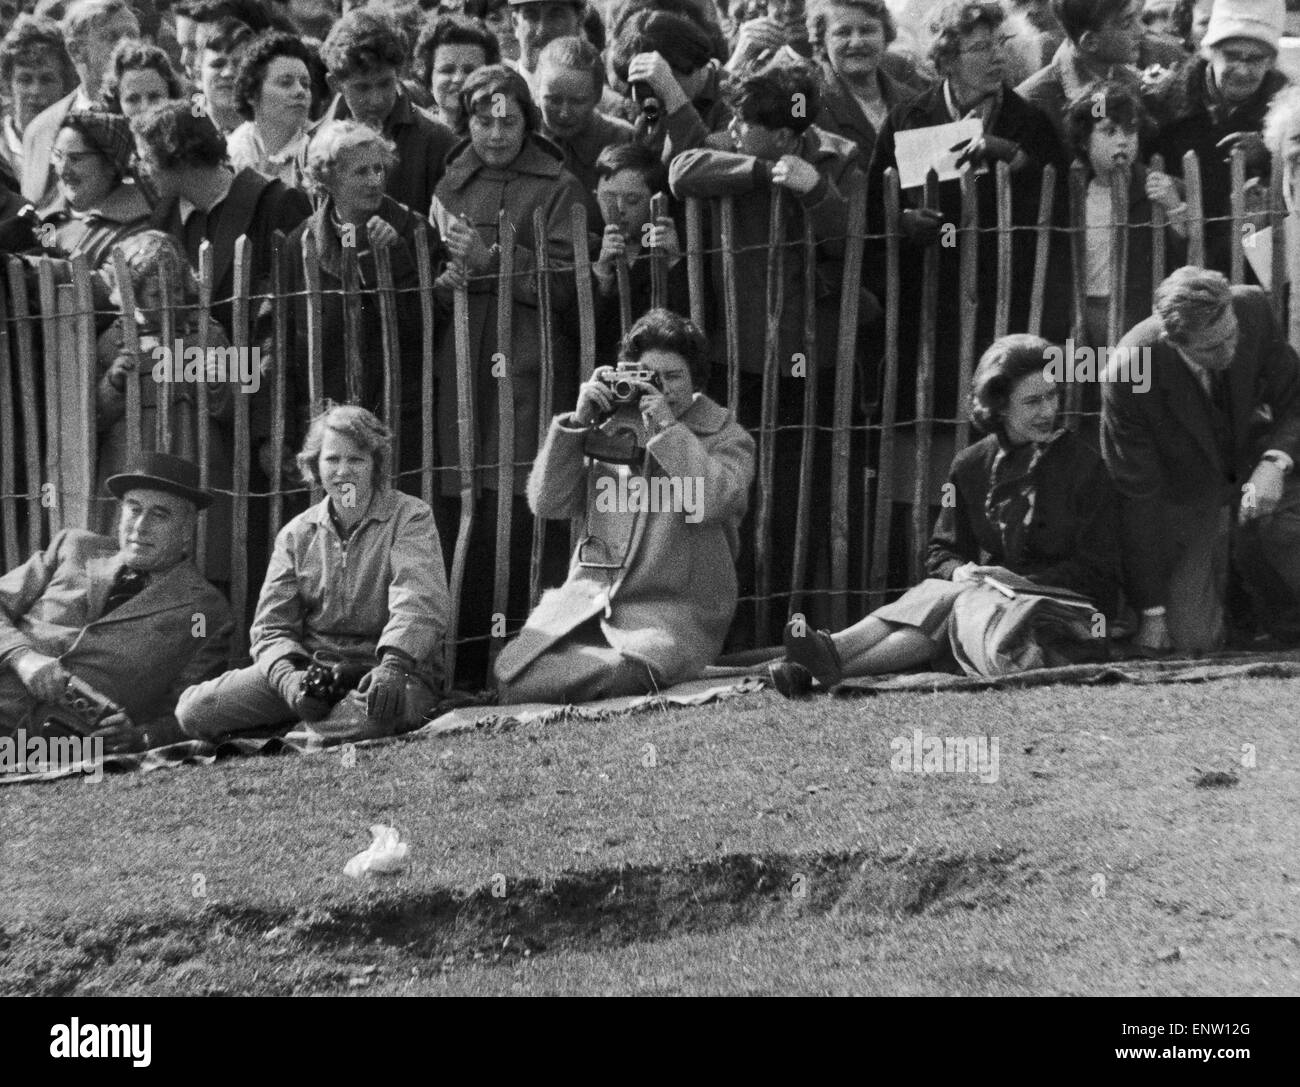 Her Majesty Queen Elizabeth II taking a picture at the Badminton Horse Trials. 13th April 1962 - Stock Image